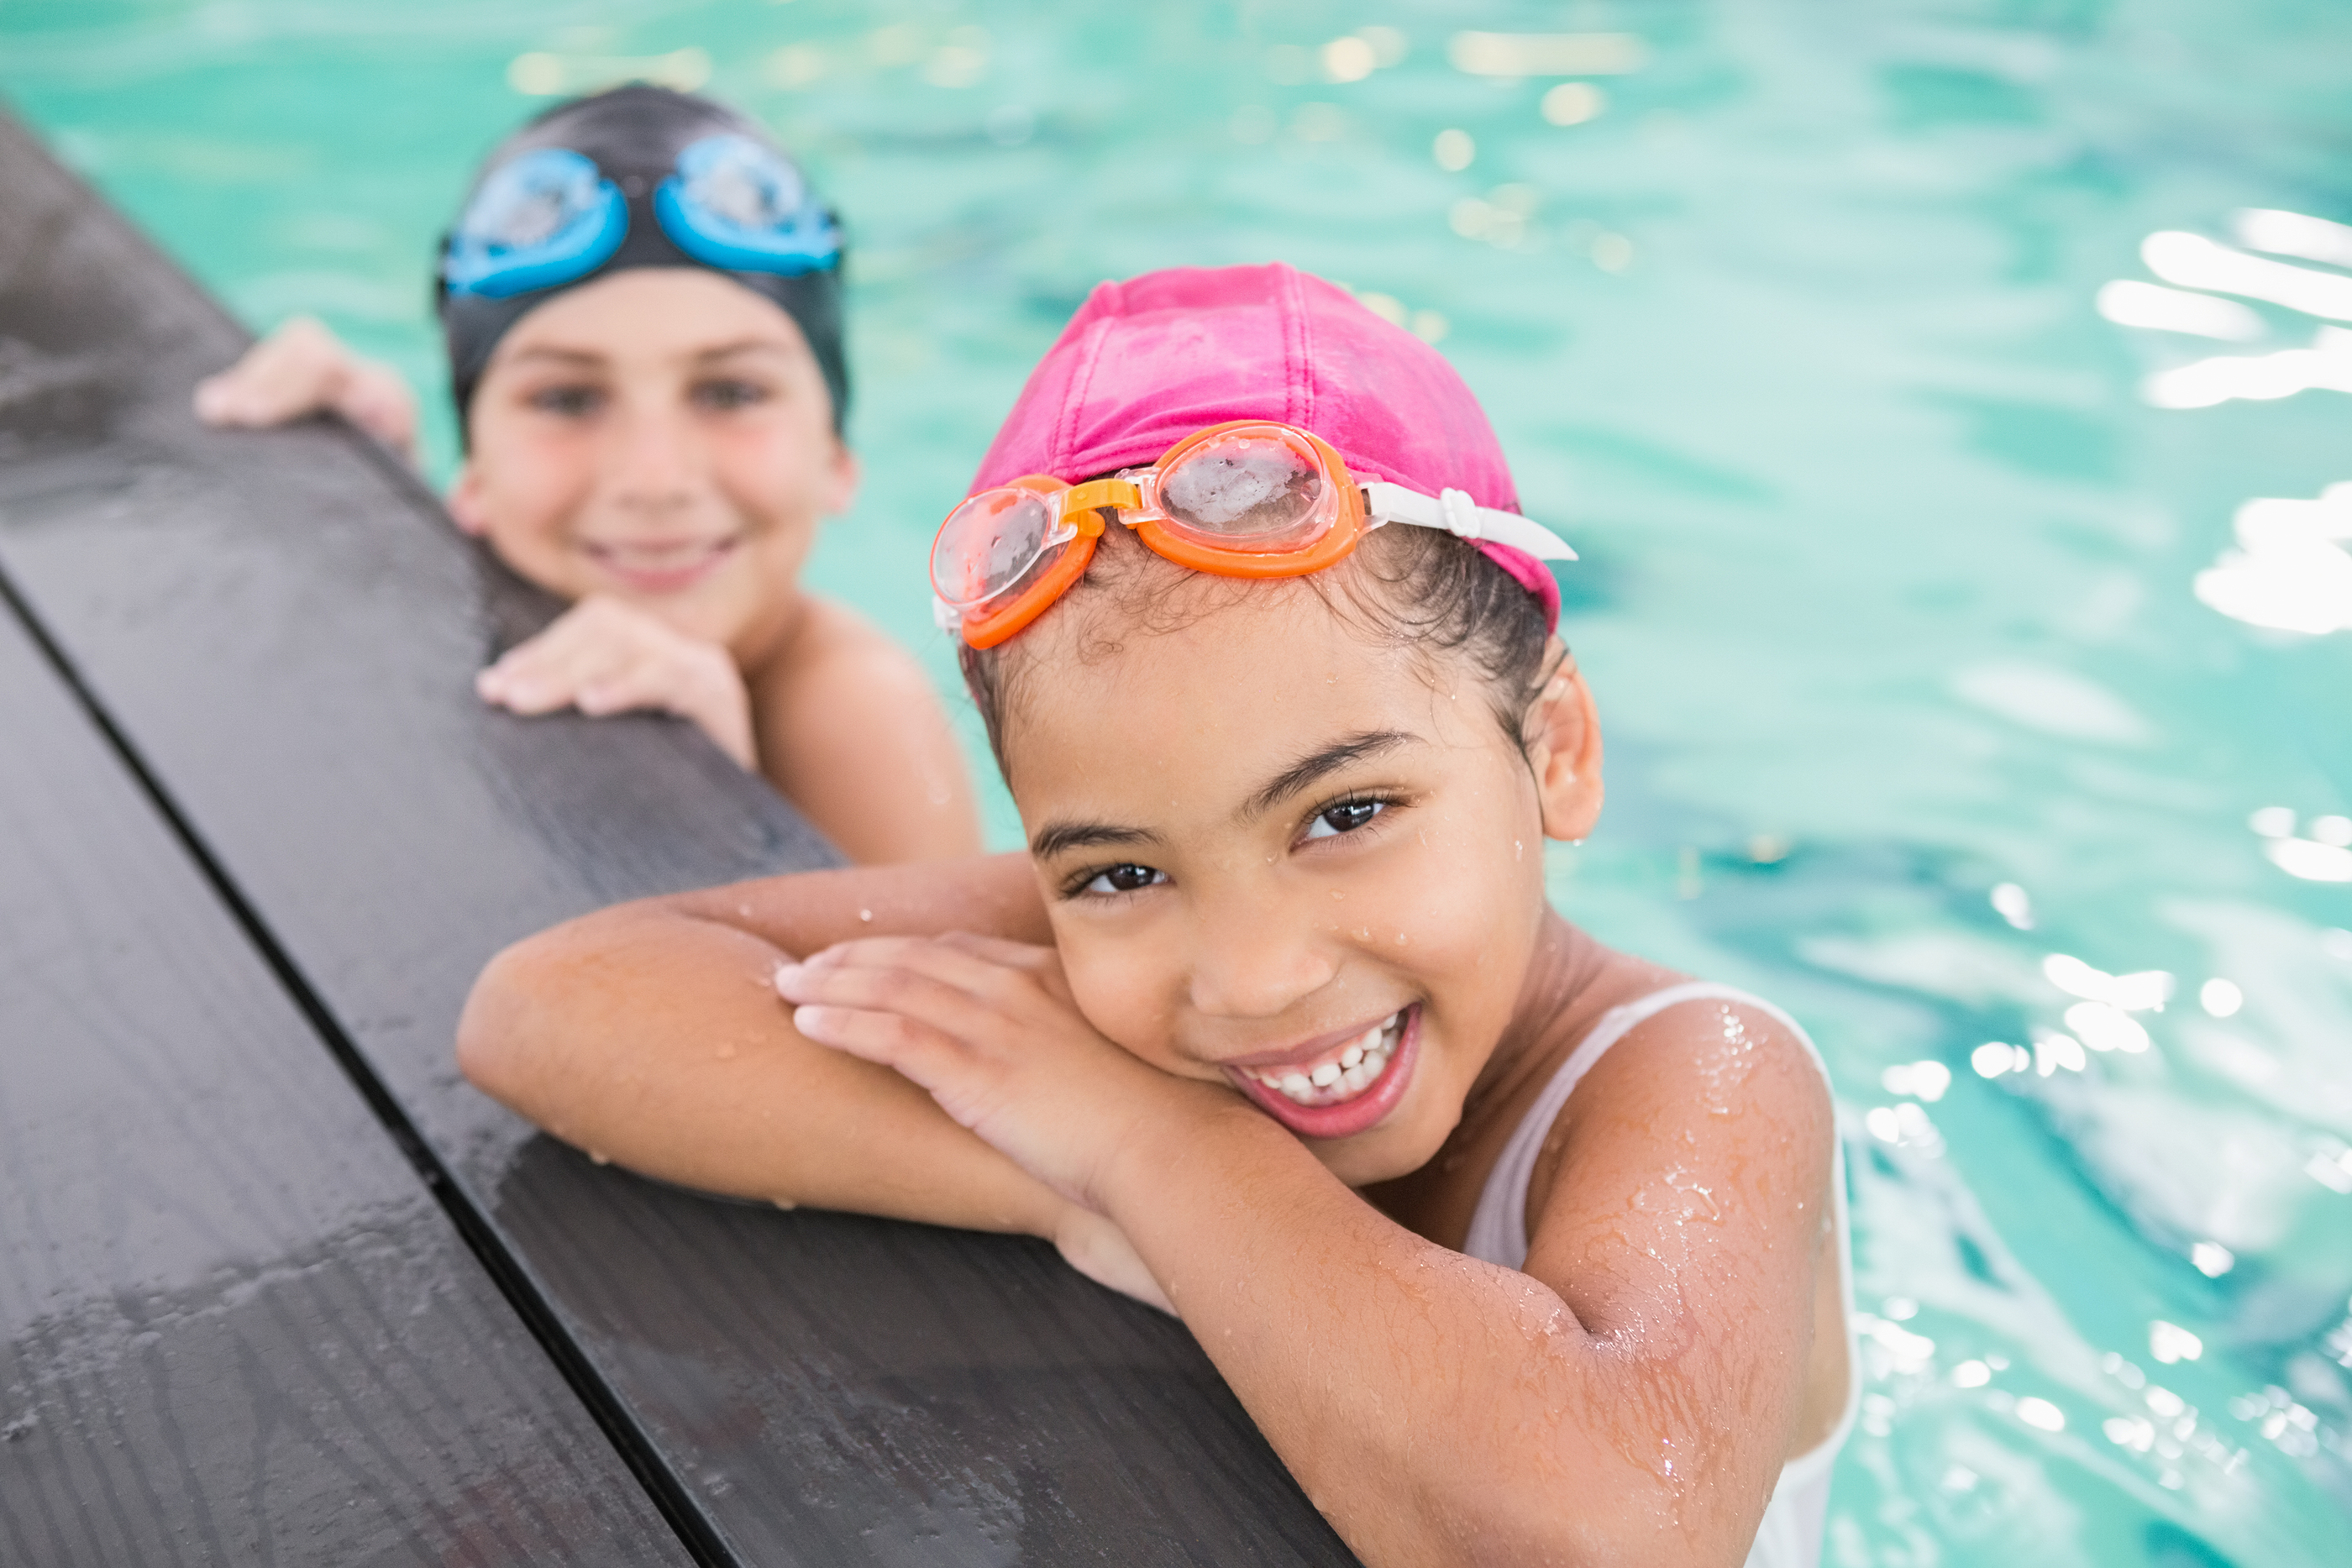 Cute swimming class in the pool at the leisure center.jpg